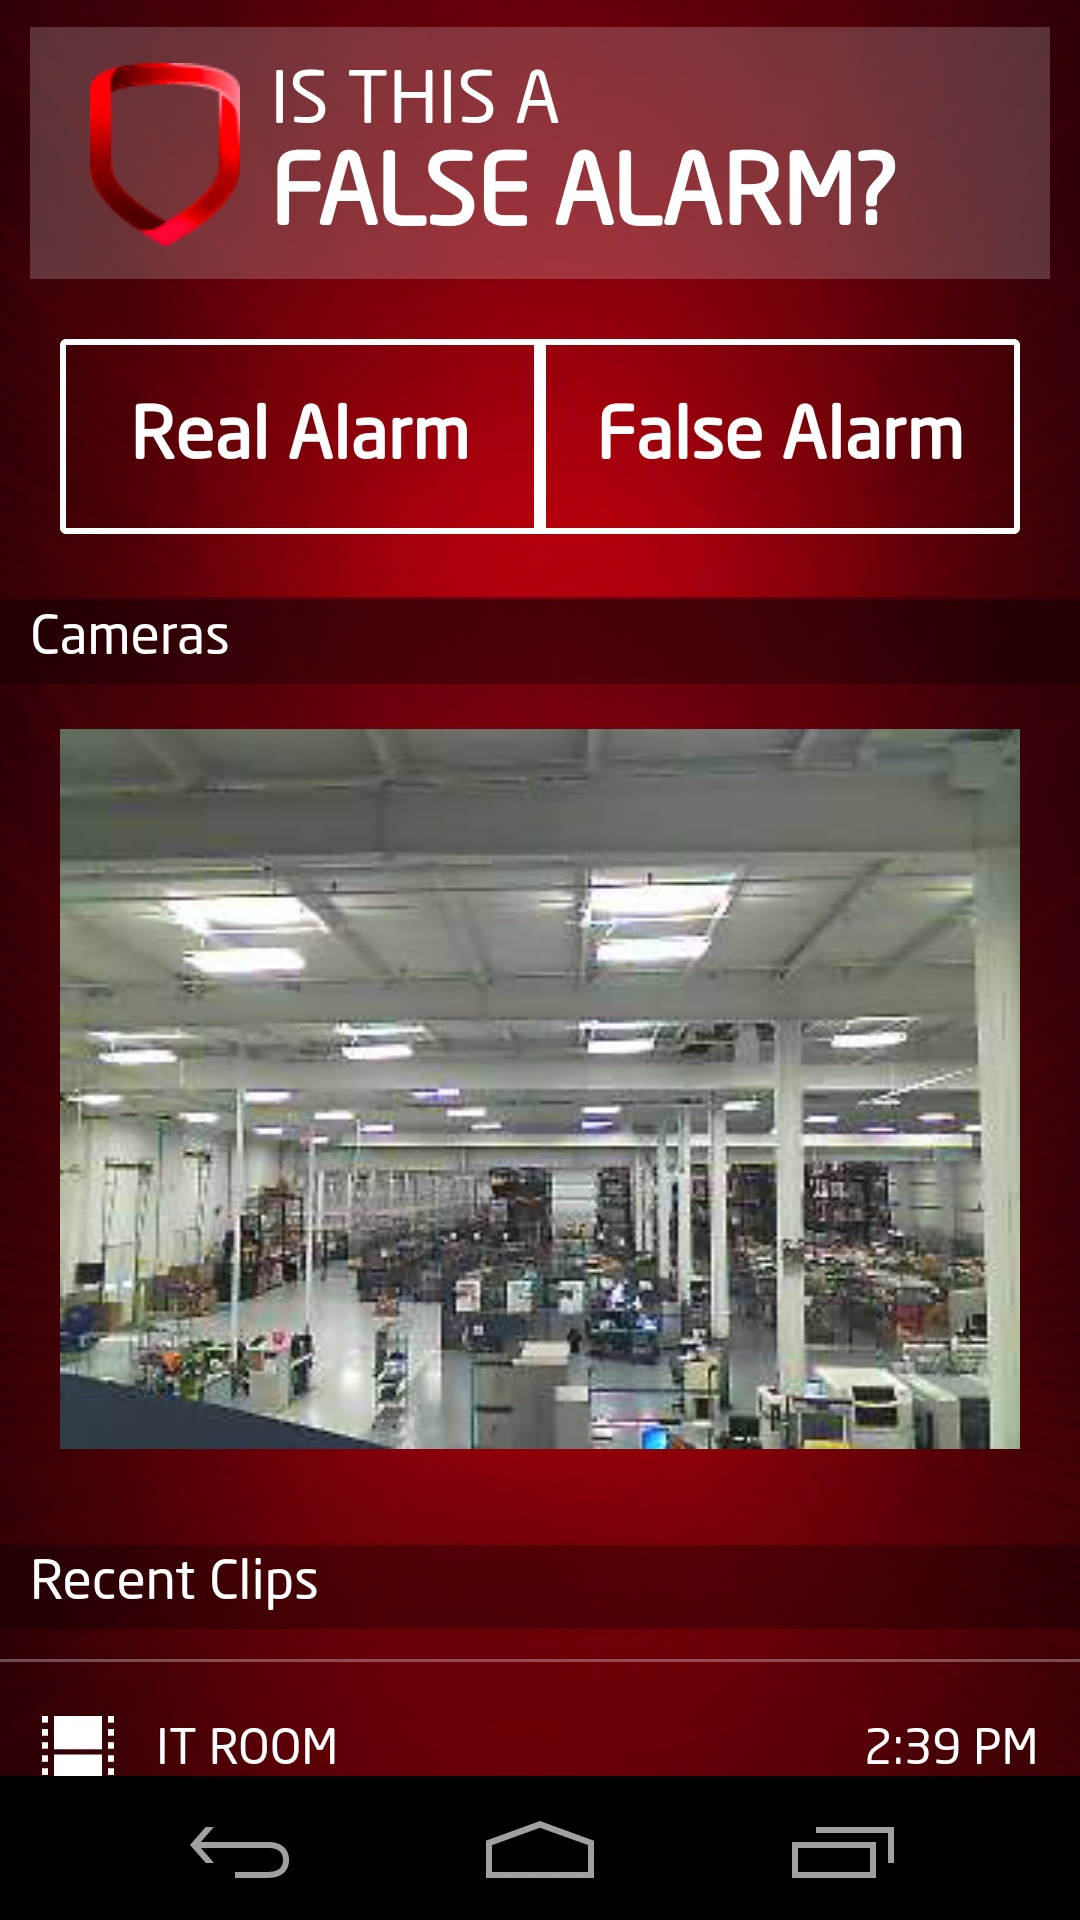 Commercial video surveillance systems from Symspire, Nashville, TN